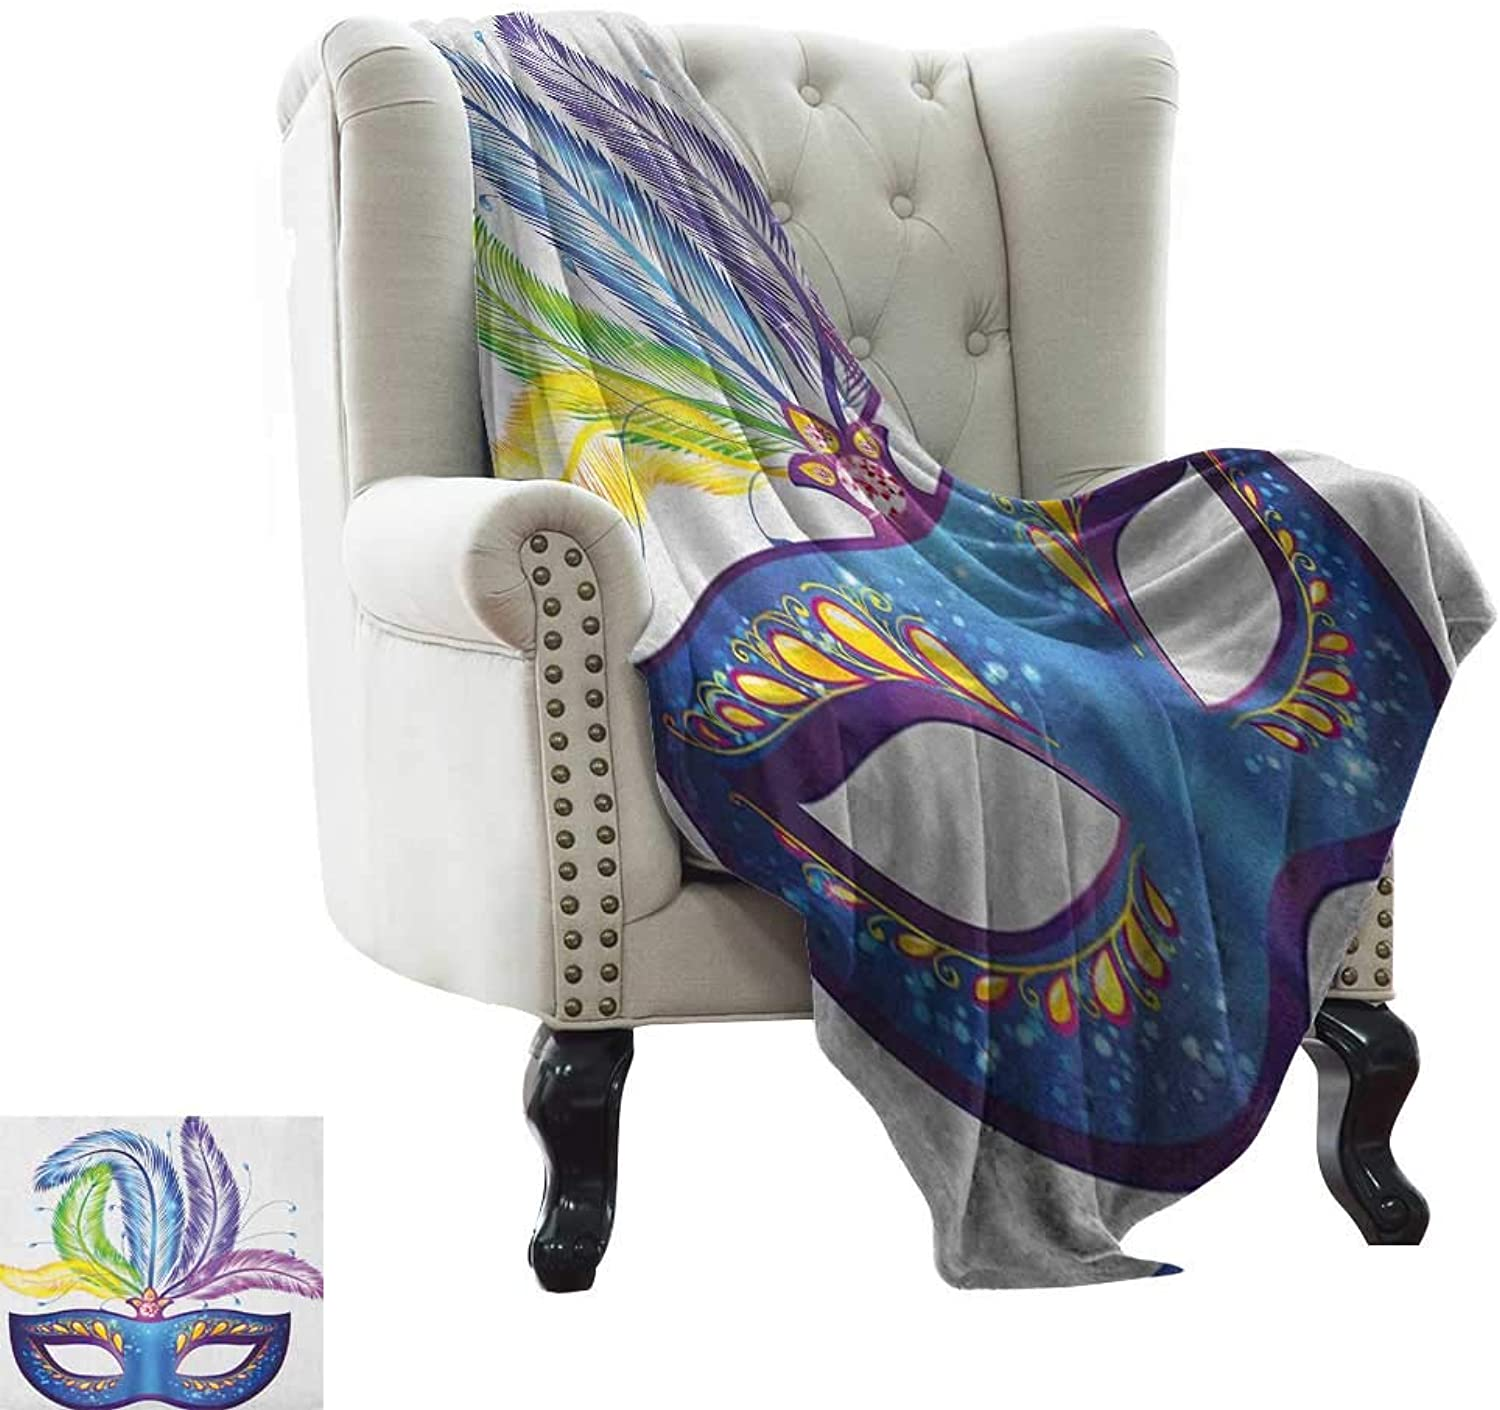 BelleAckerman Weighted Blanket for Kids Mardi Gras,bluee Ornate Venetian Festival Mask with Feathers Masquerade Parade Preparations, Multicolor Blanket for Sofa Couch TV Bed All Season 35 x60